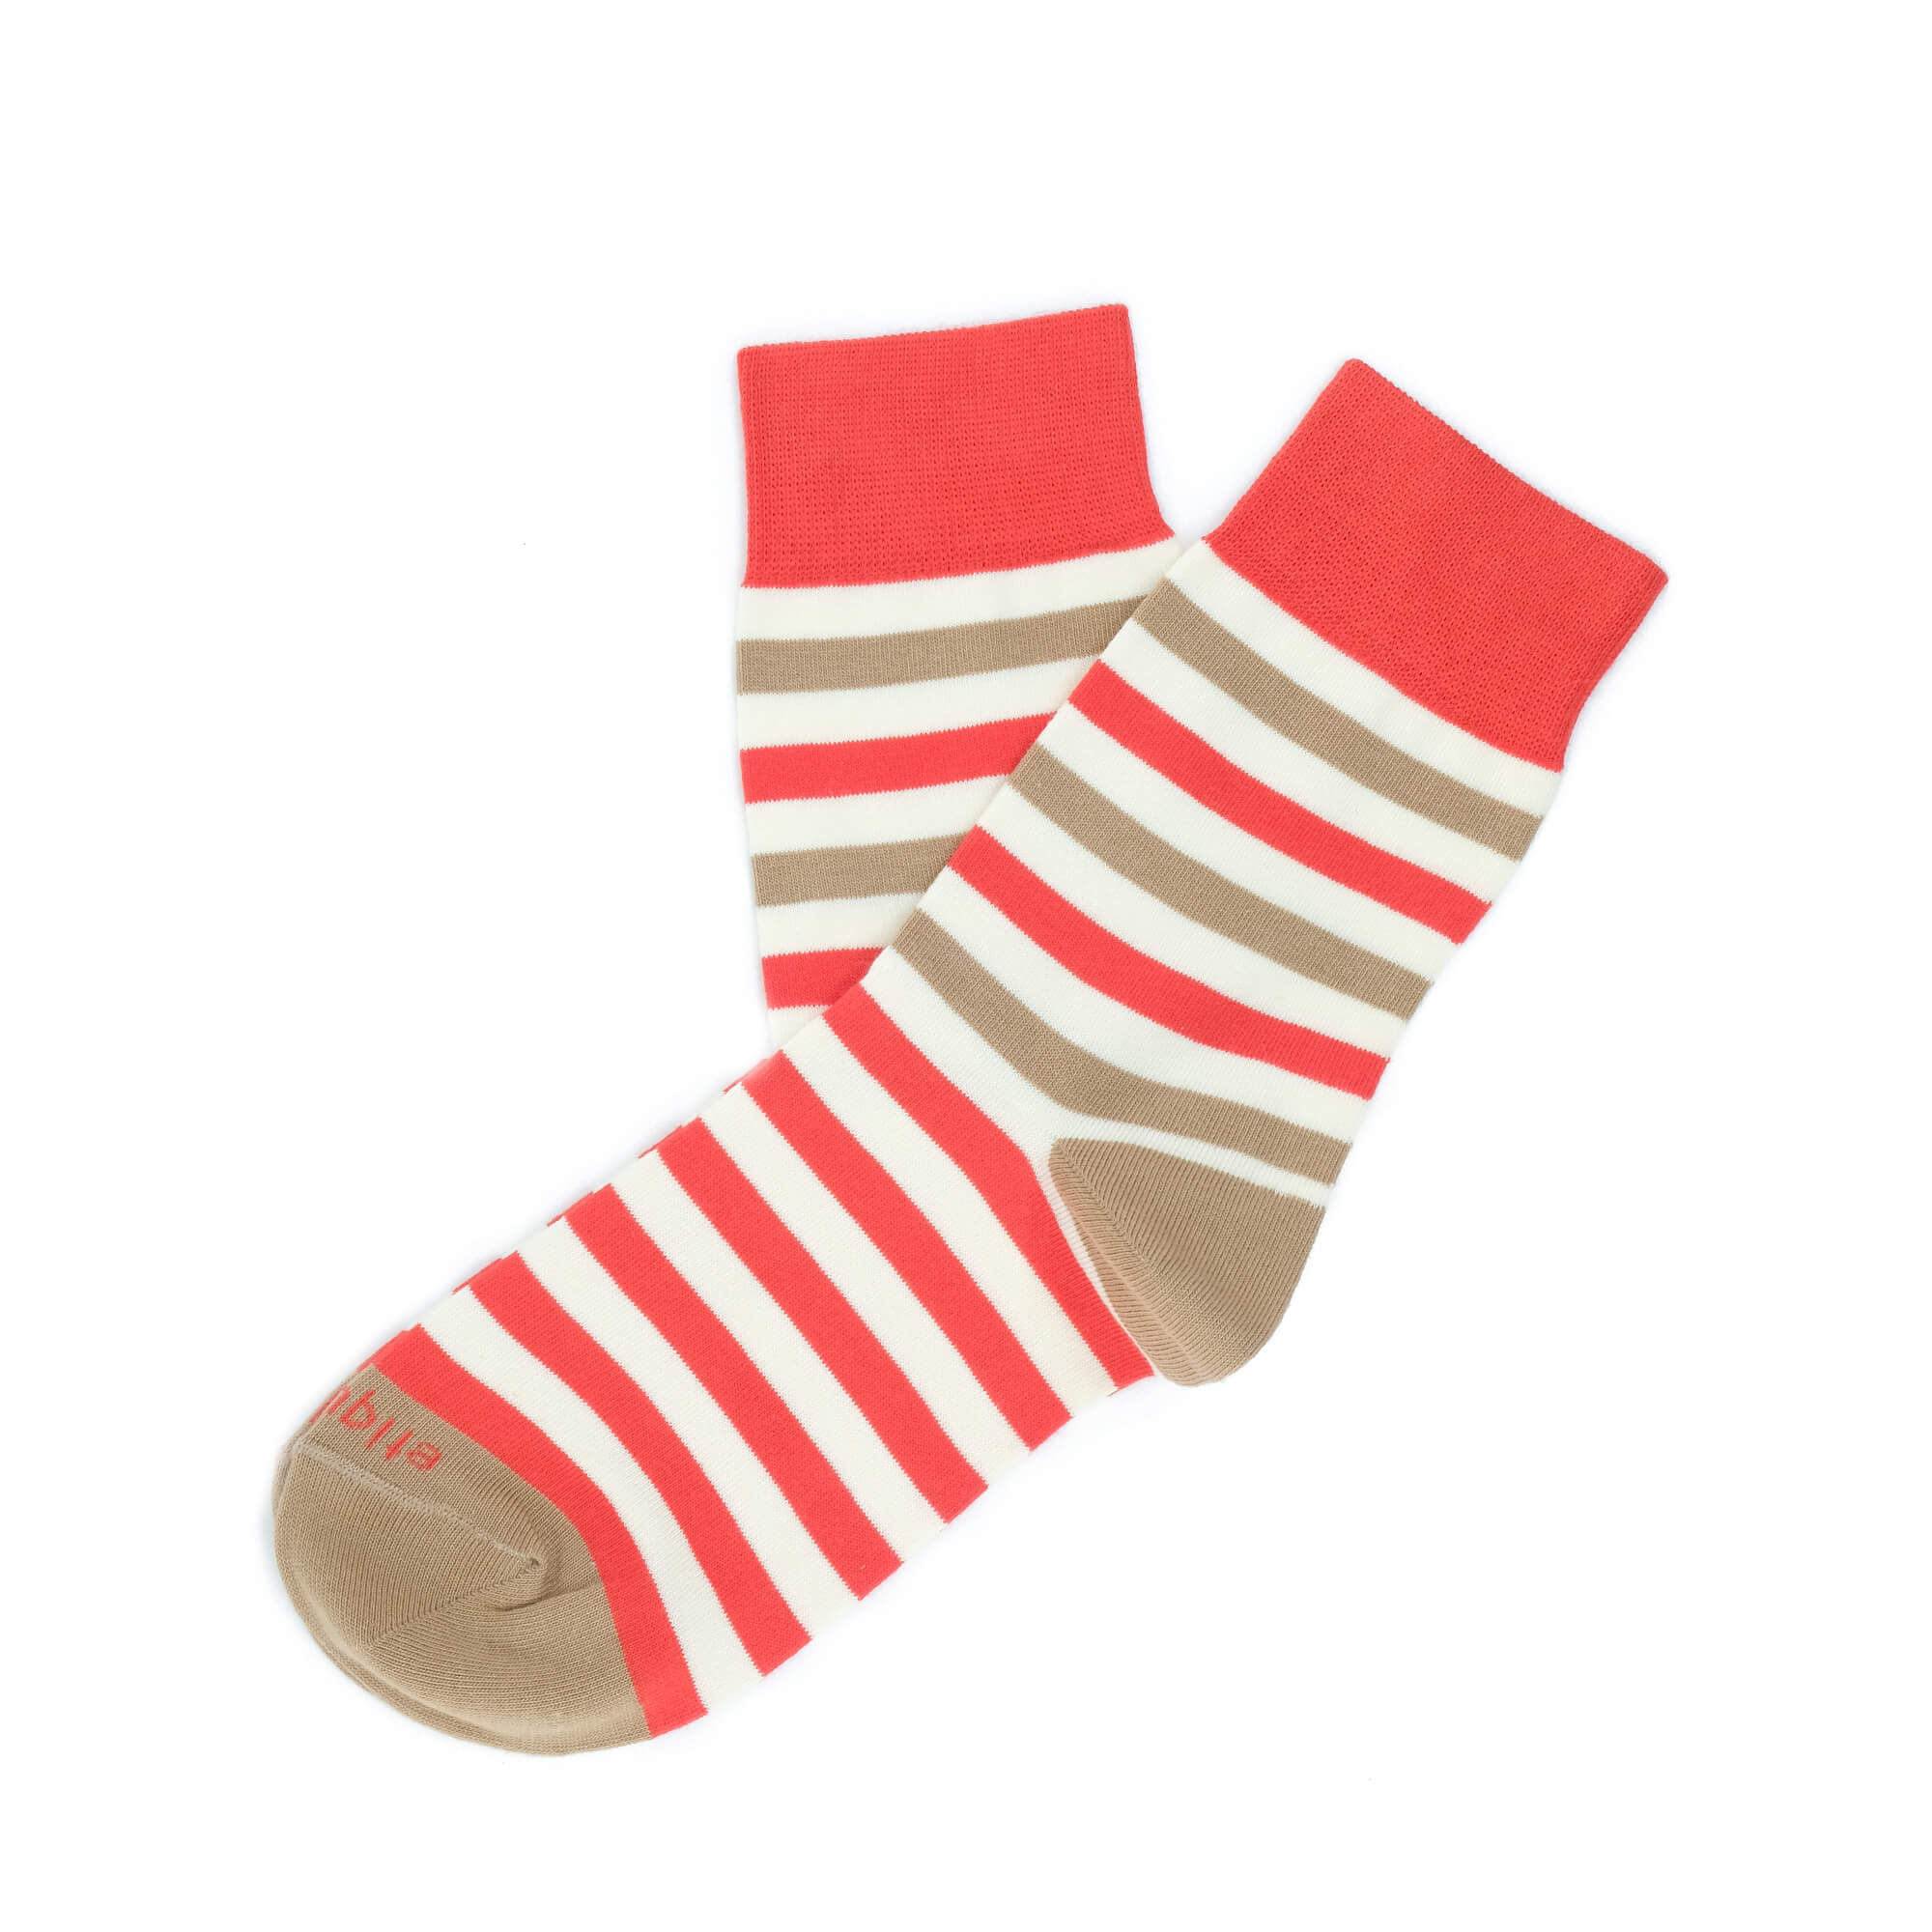 Womens Socks - Crosswalk Stripes Women's Socks - Red⎪Etiquette Clothiers